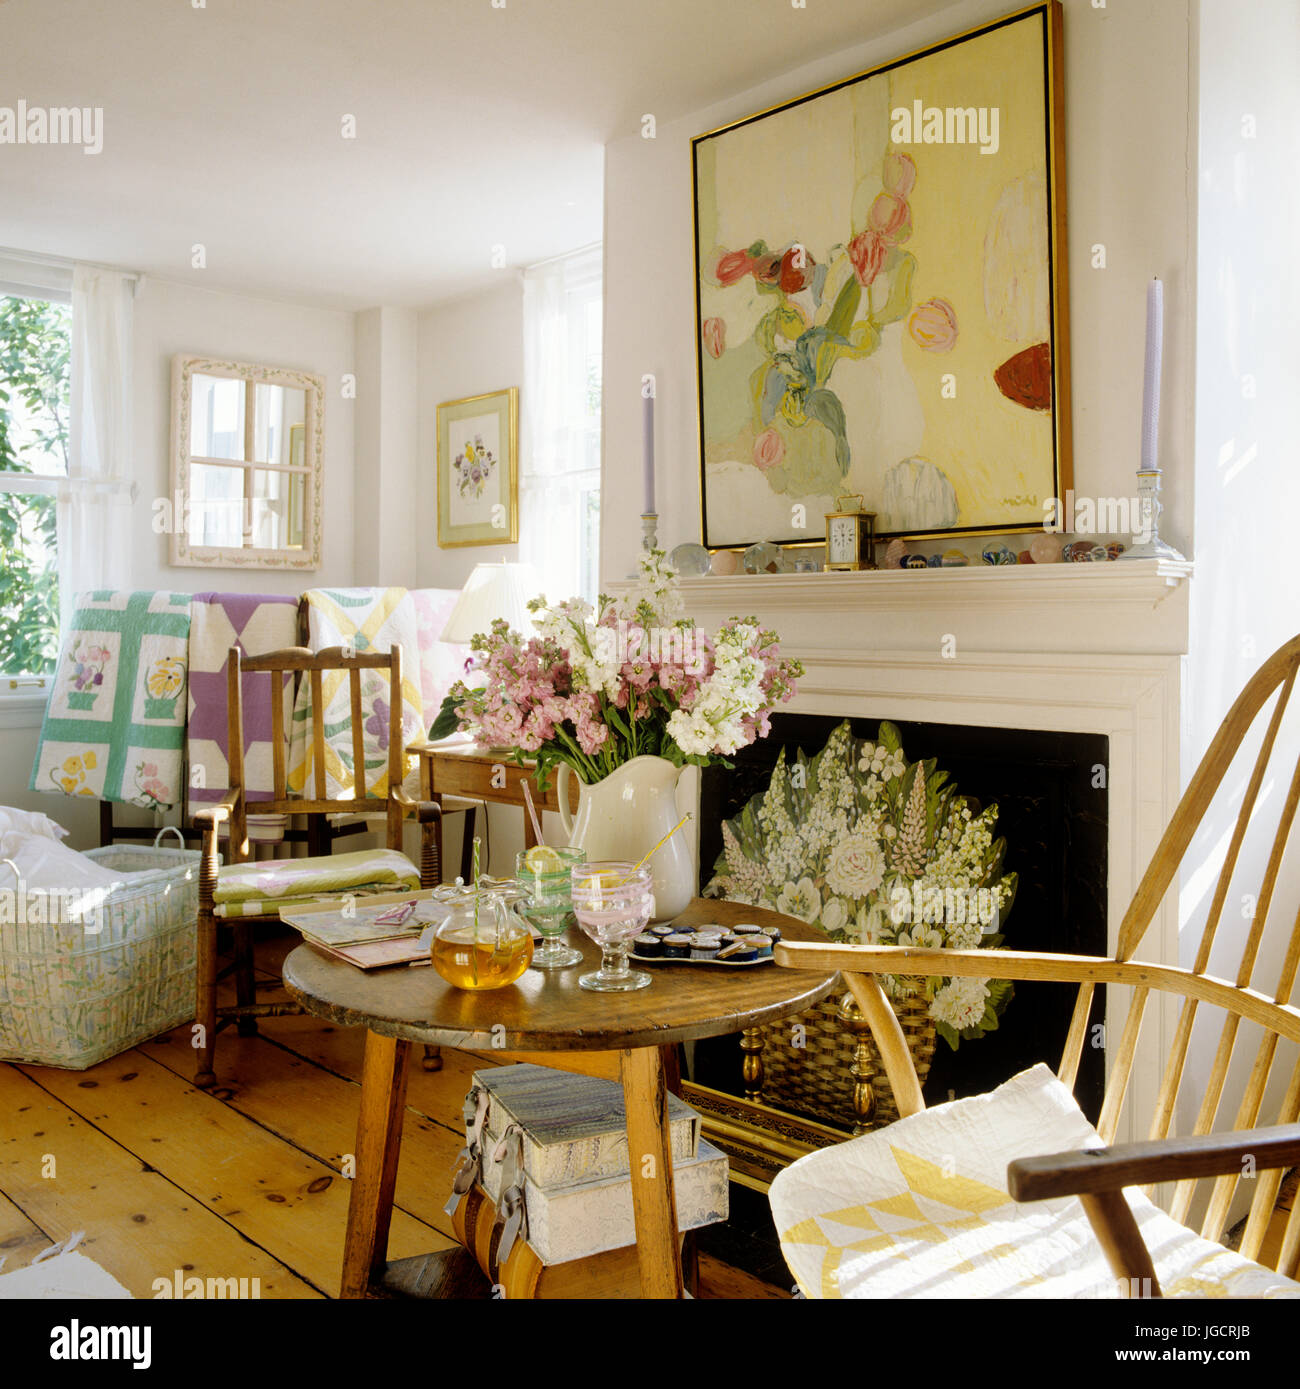 Country style living room Stock Photo: 147799411 - Alamy